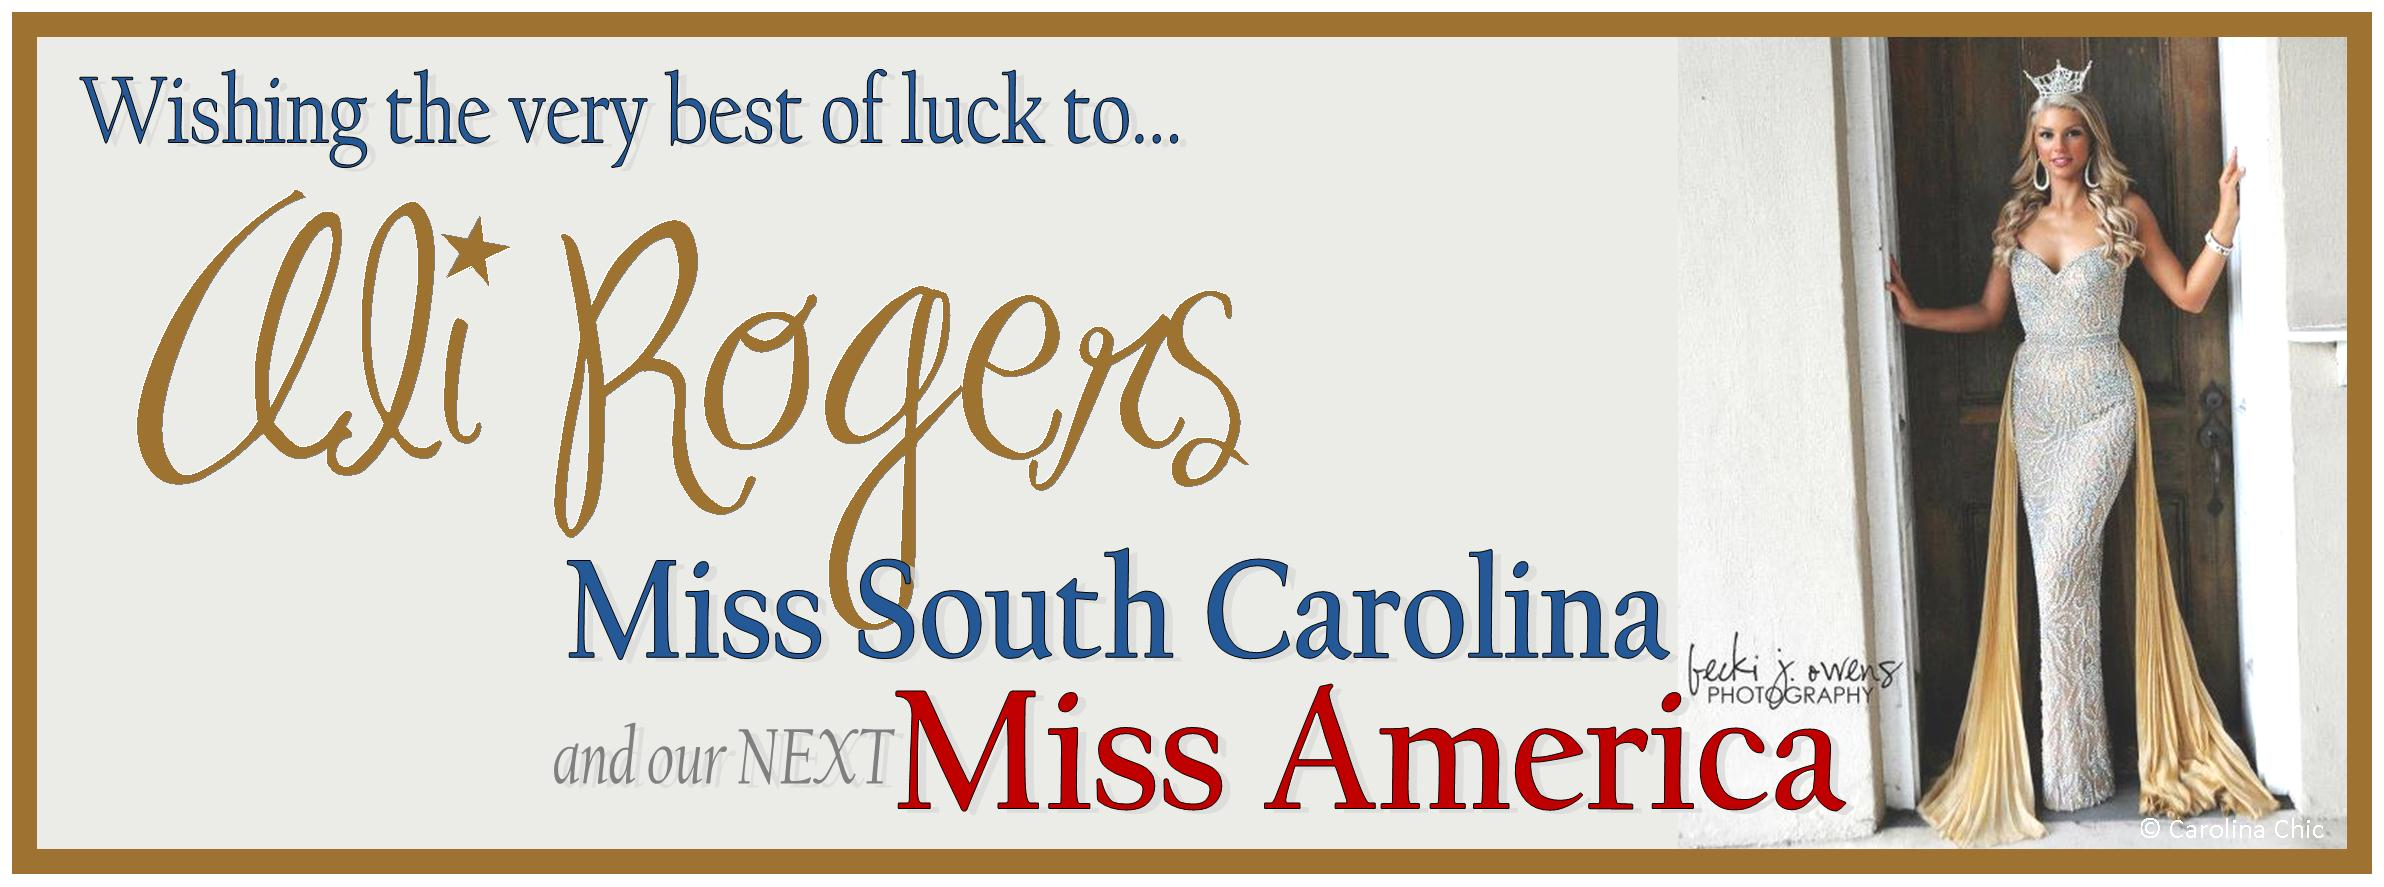 FB TIMELINE COVER / Miss South Carolina